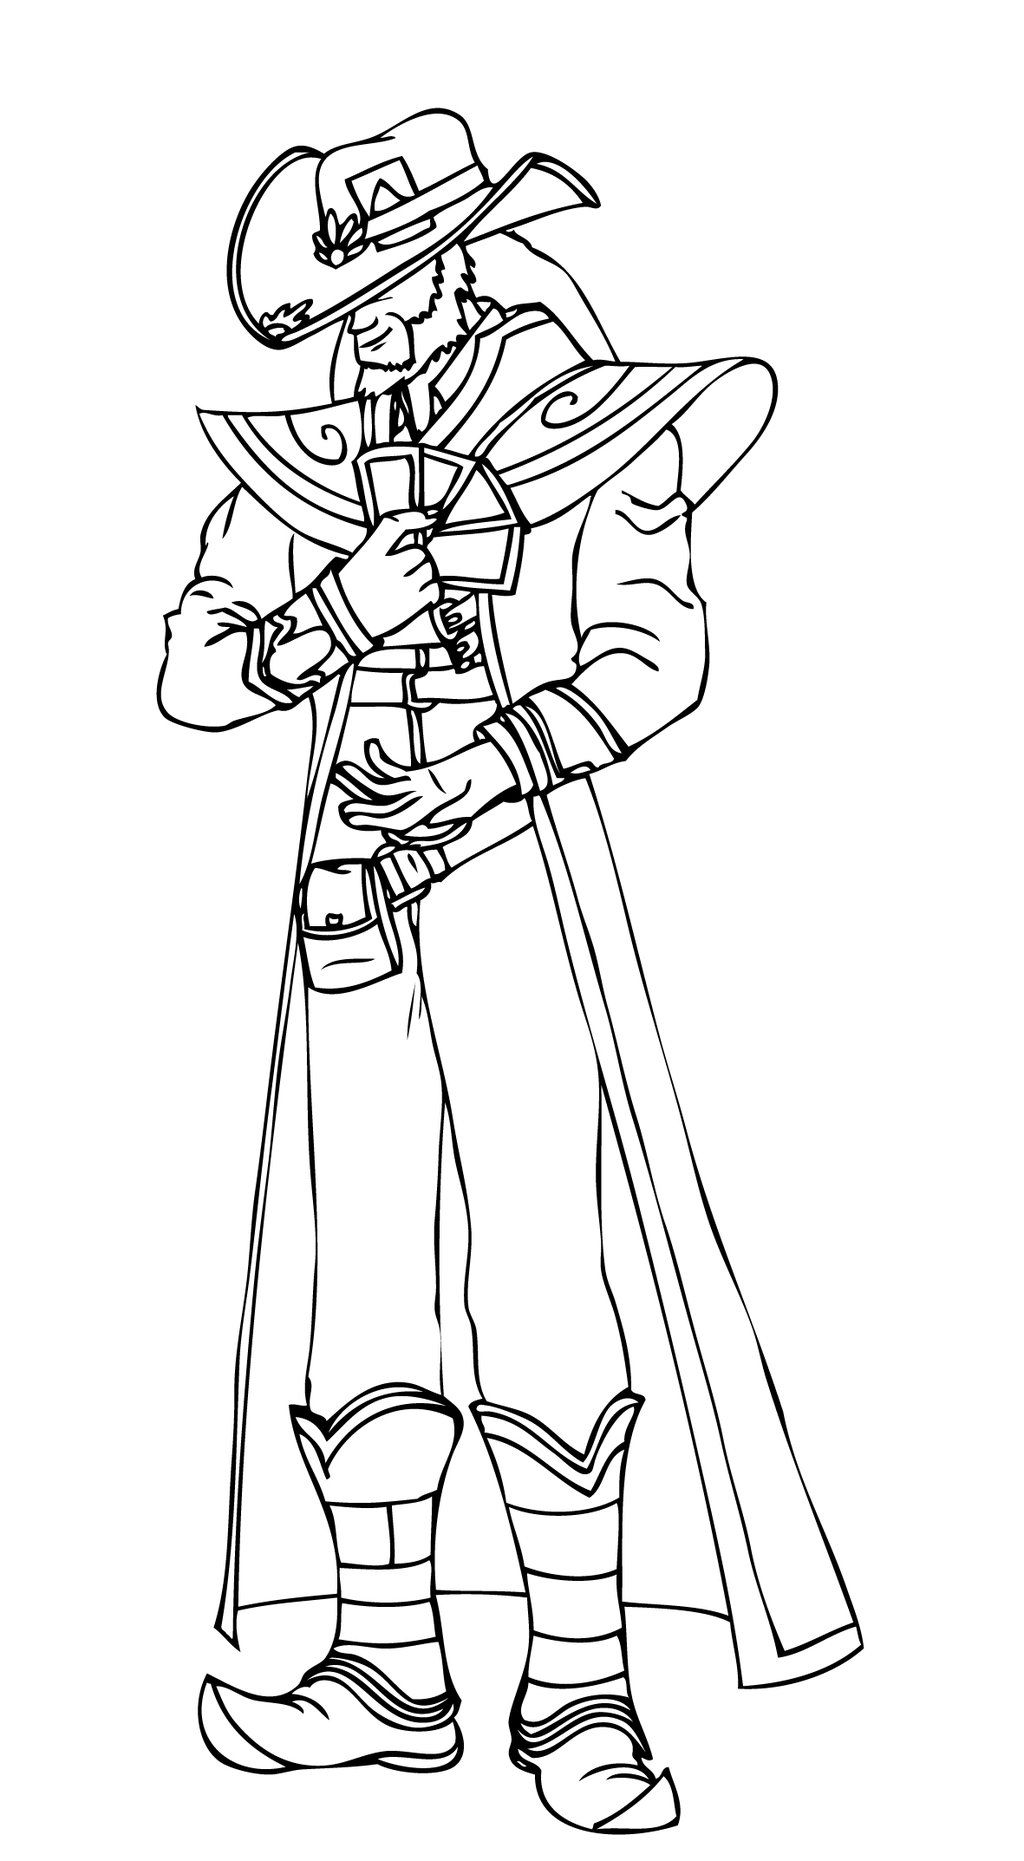 Pin on LineArt: League of Legends